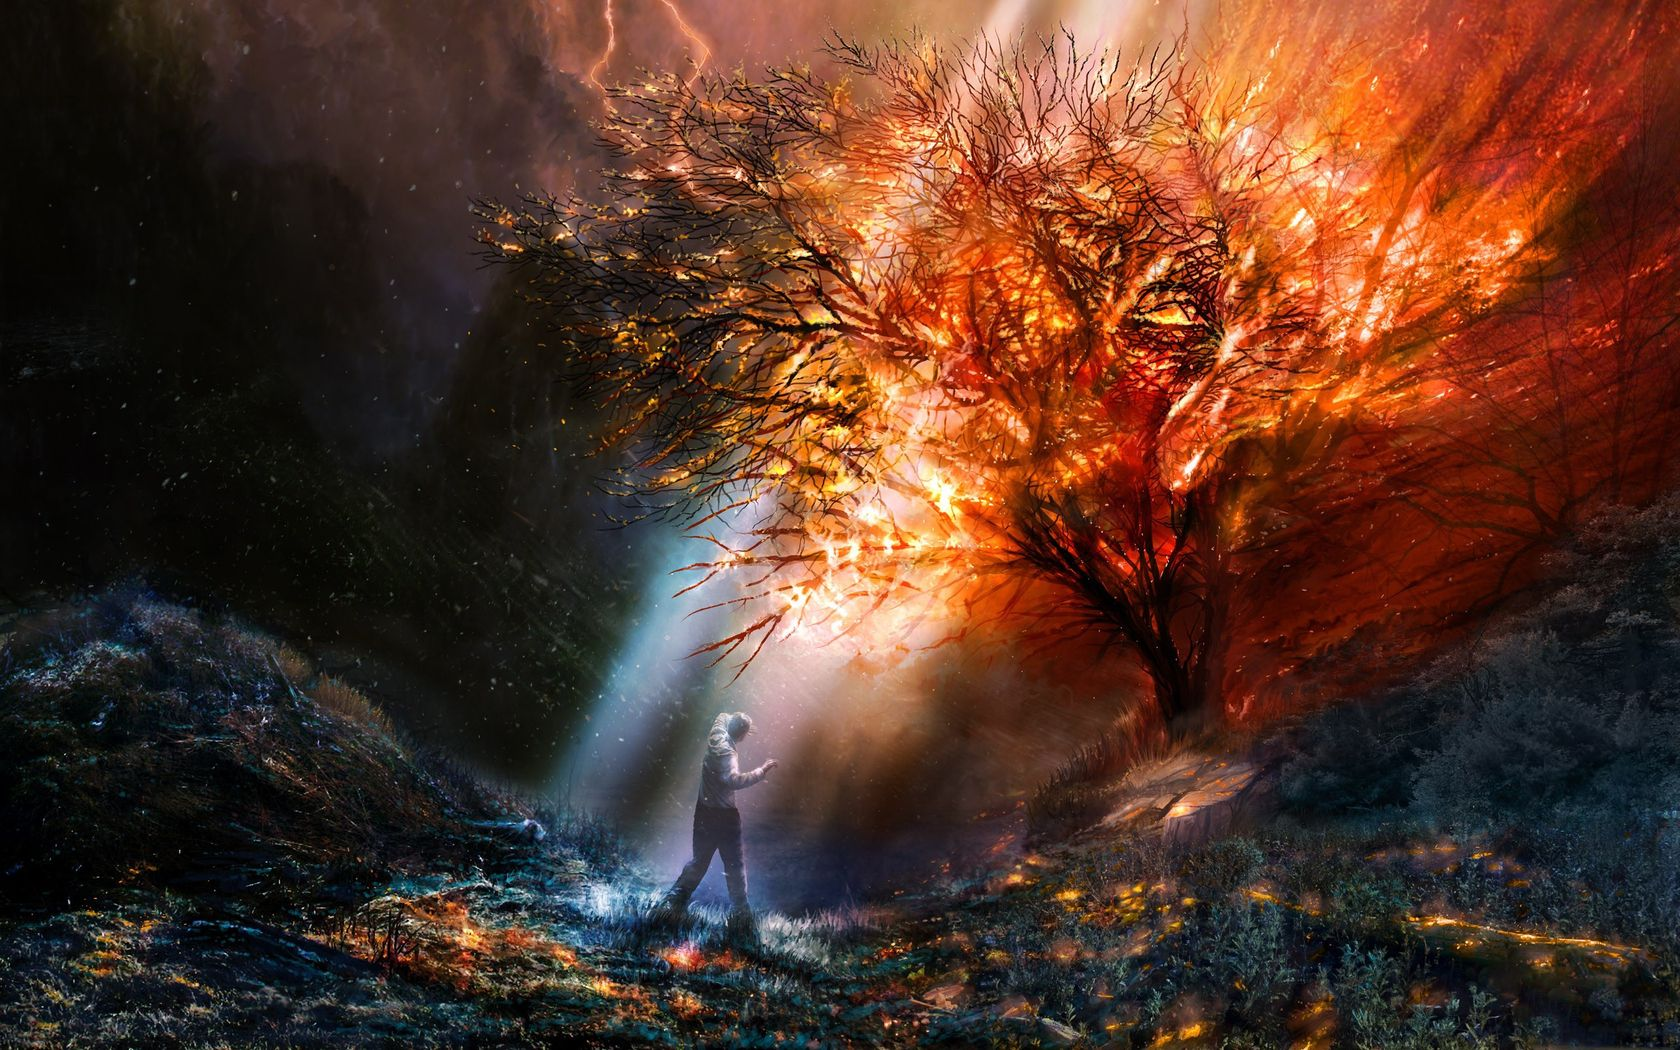 Download Wallpaper Fire Tree Light One Free Desktop Wallpaper In The Resolution 1680x1050 Picture 377937 Fantasi